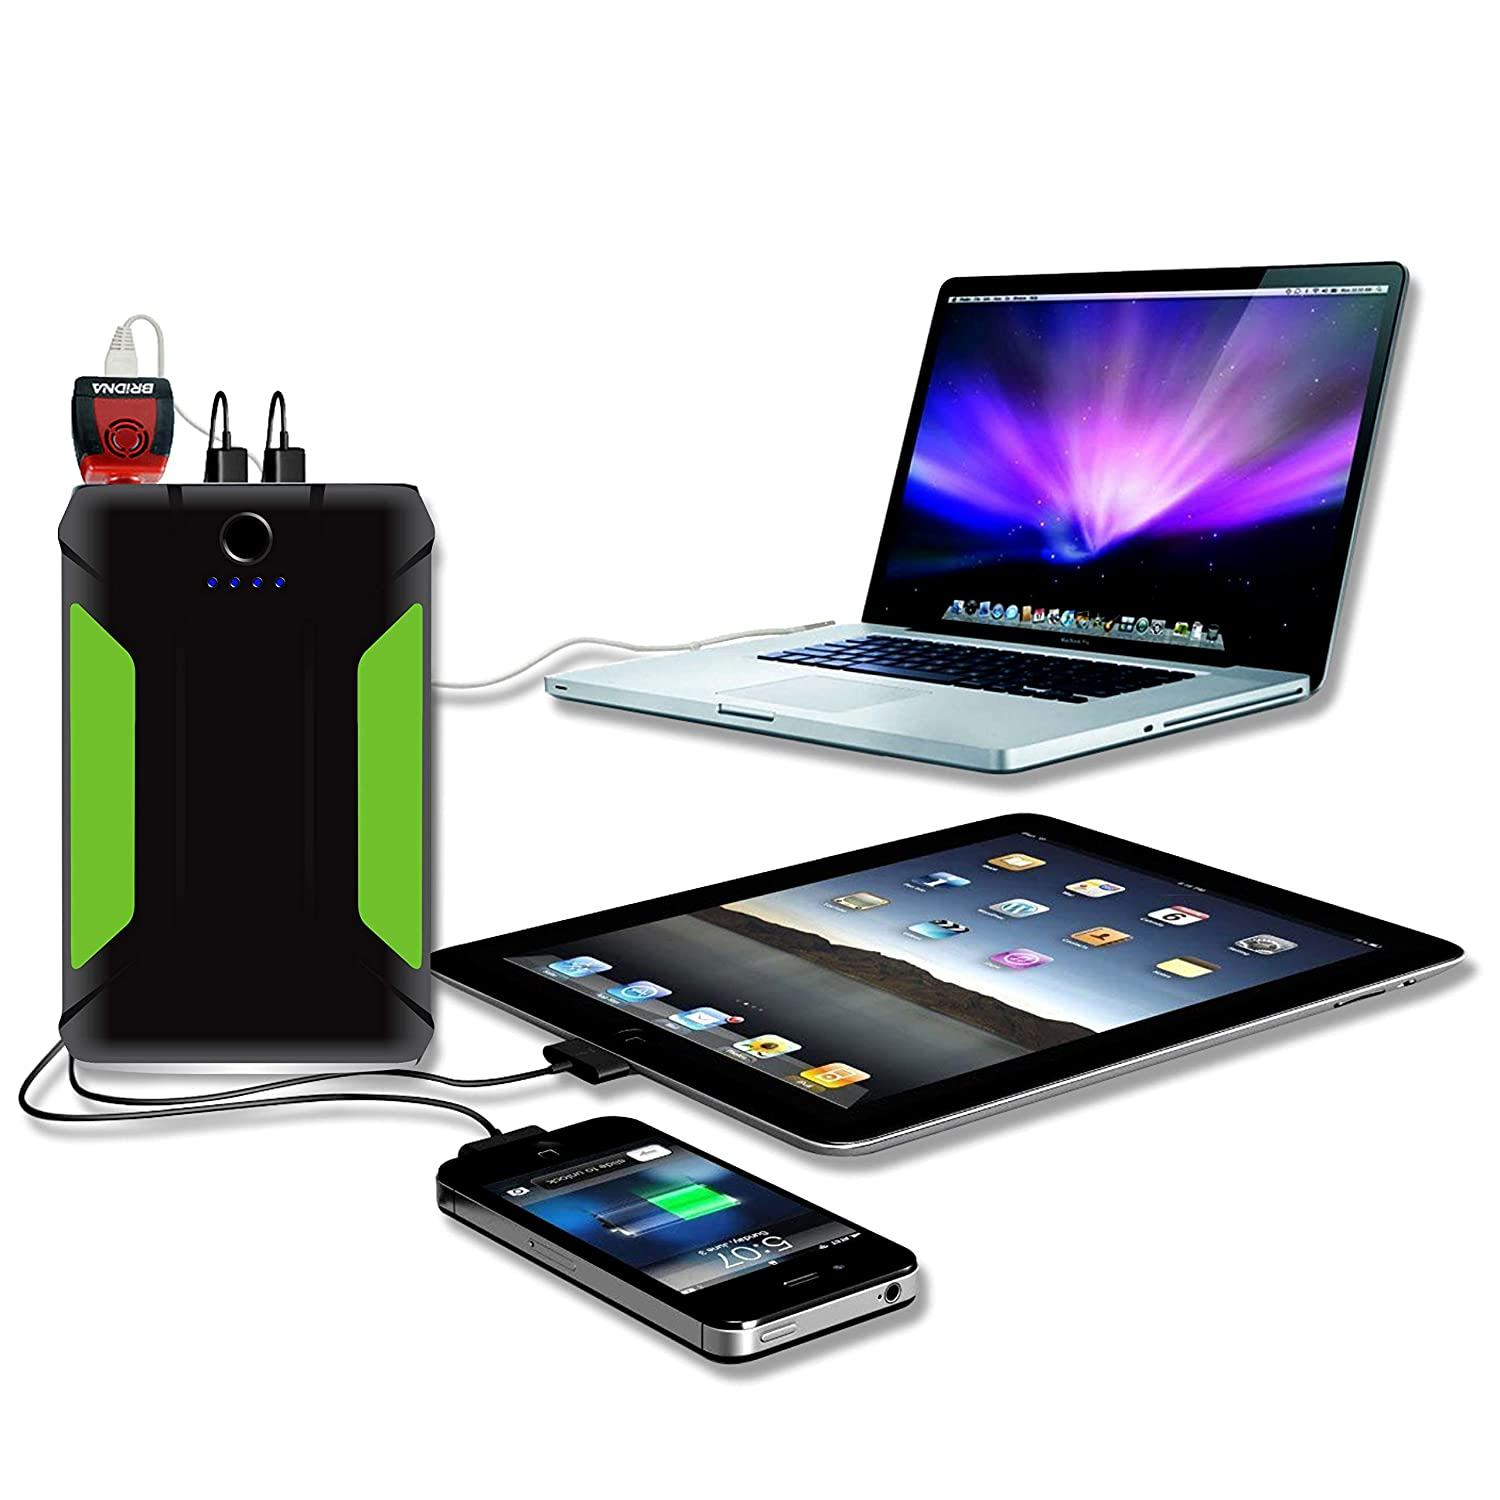 Coolnut Power Bank 31200 mAh for All Laptops, Macbooks,